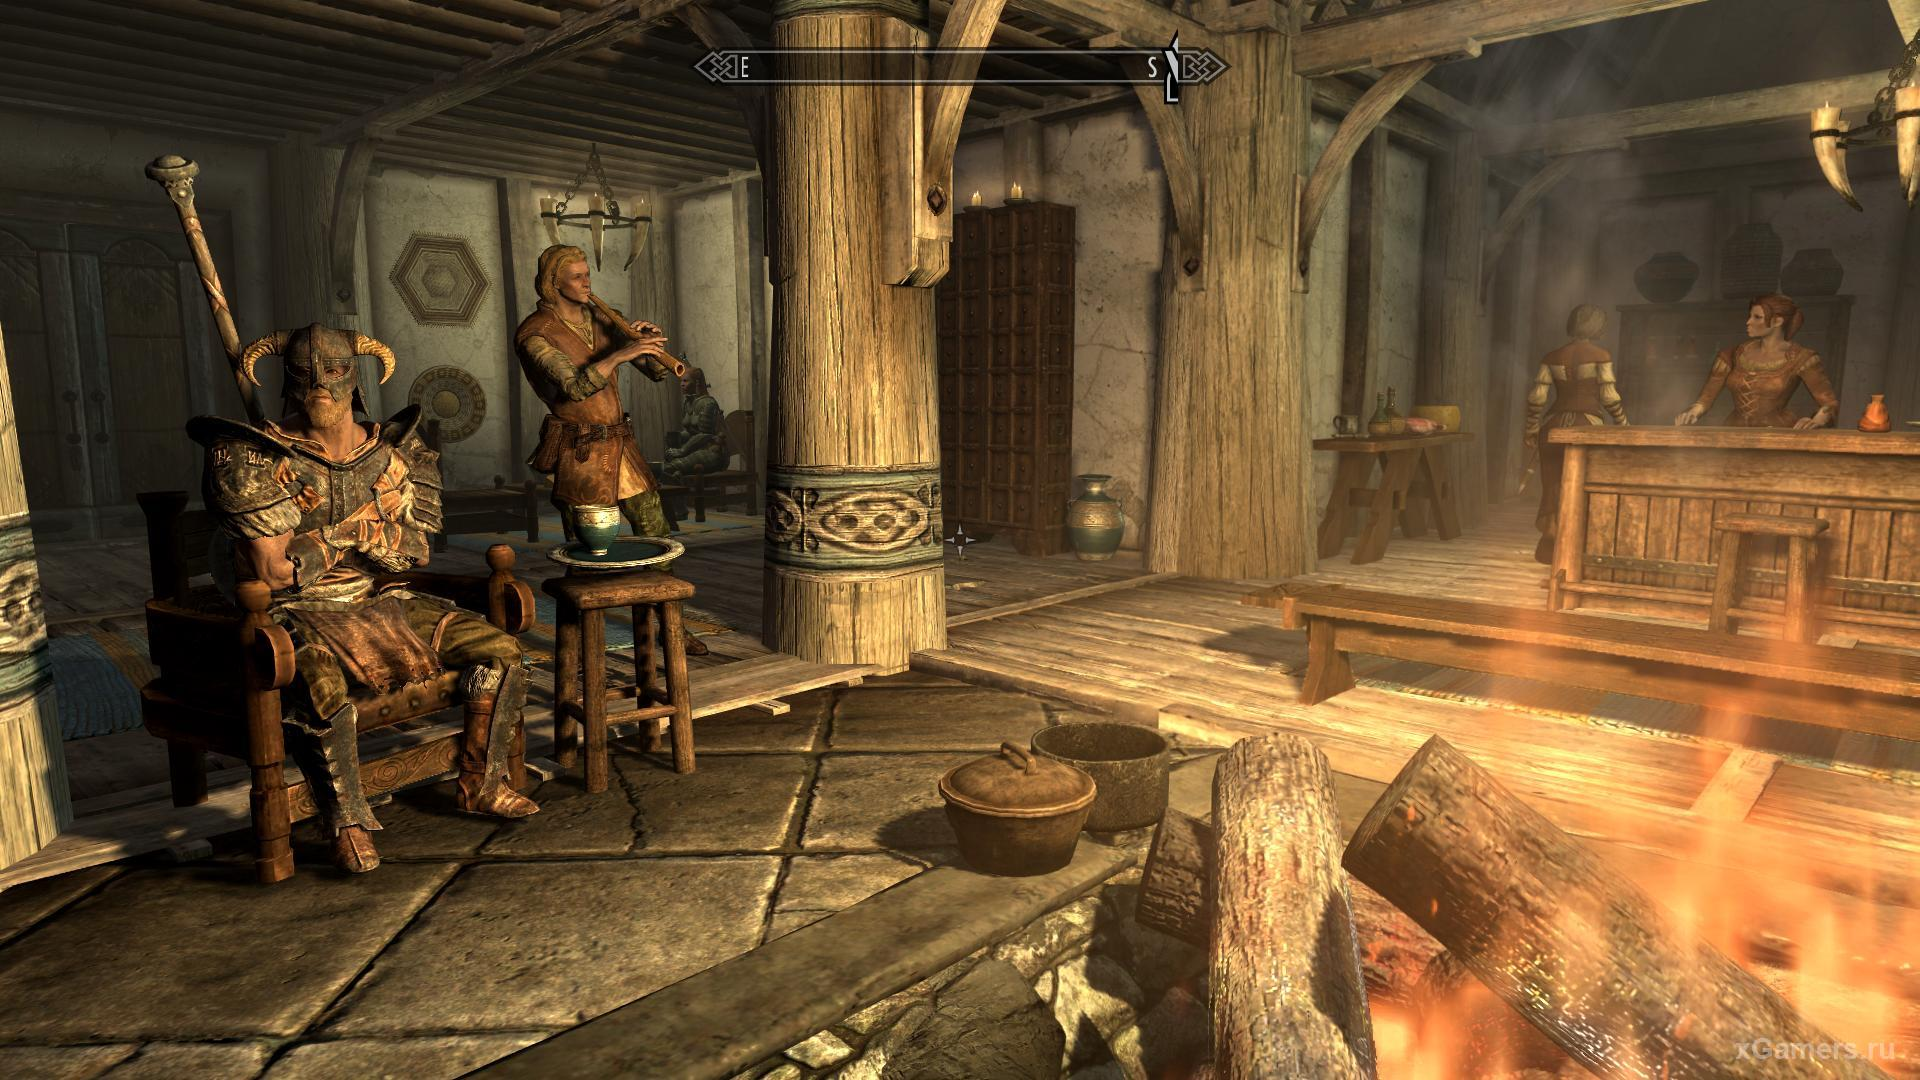 One of the mercenaries in the tavern in the game Skyrim